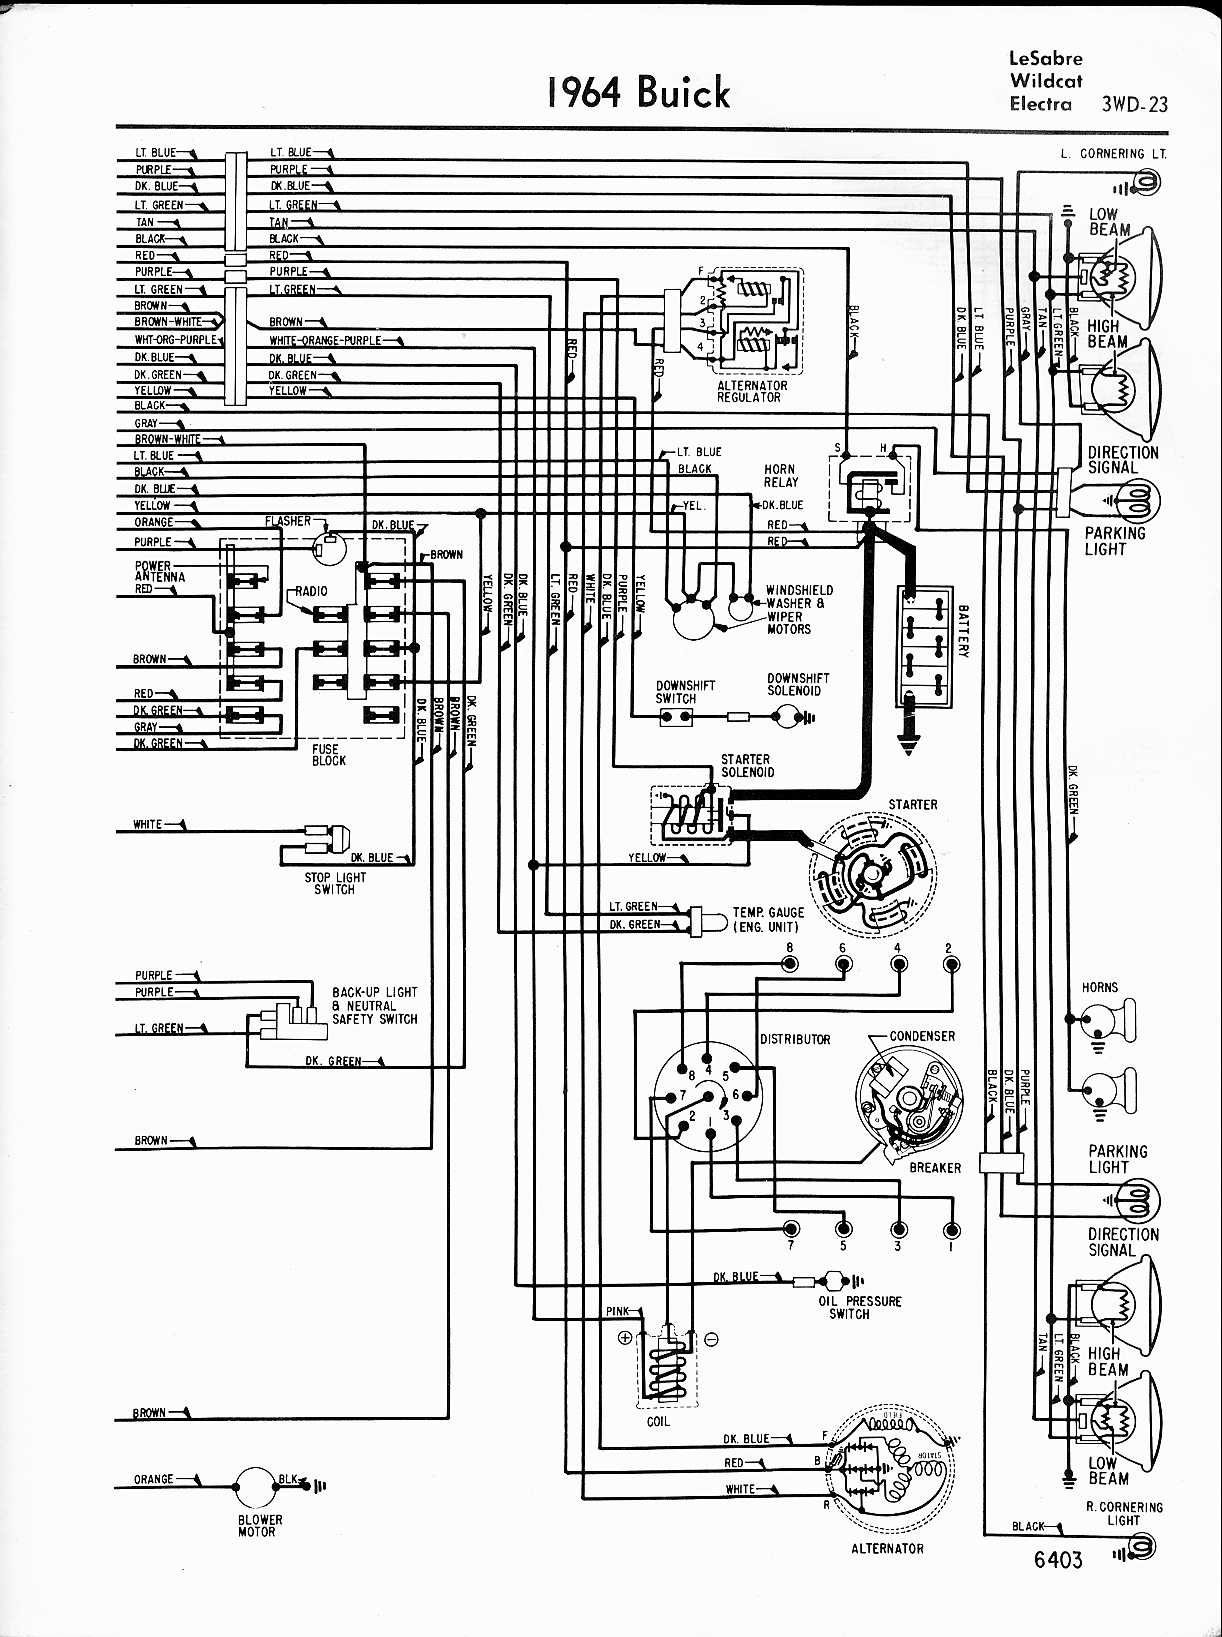 Buick Wiring Diagrams: 1957-1965 on fan switch wiring diagram, turn signal switch wiring diagram, ignition switch wiring diagram, key switch wiring diagram, heater switch wiring diagram, headlight switch wiring diagram,